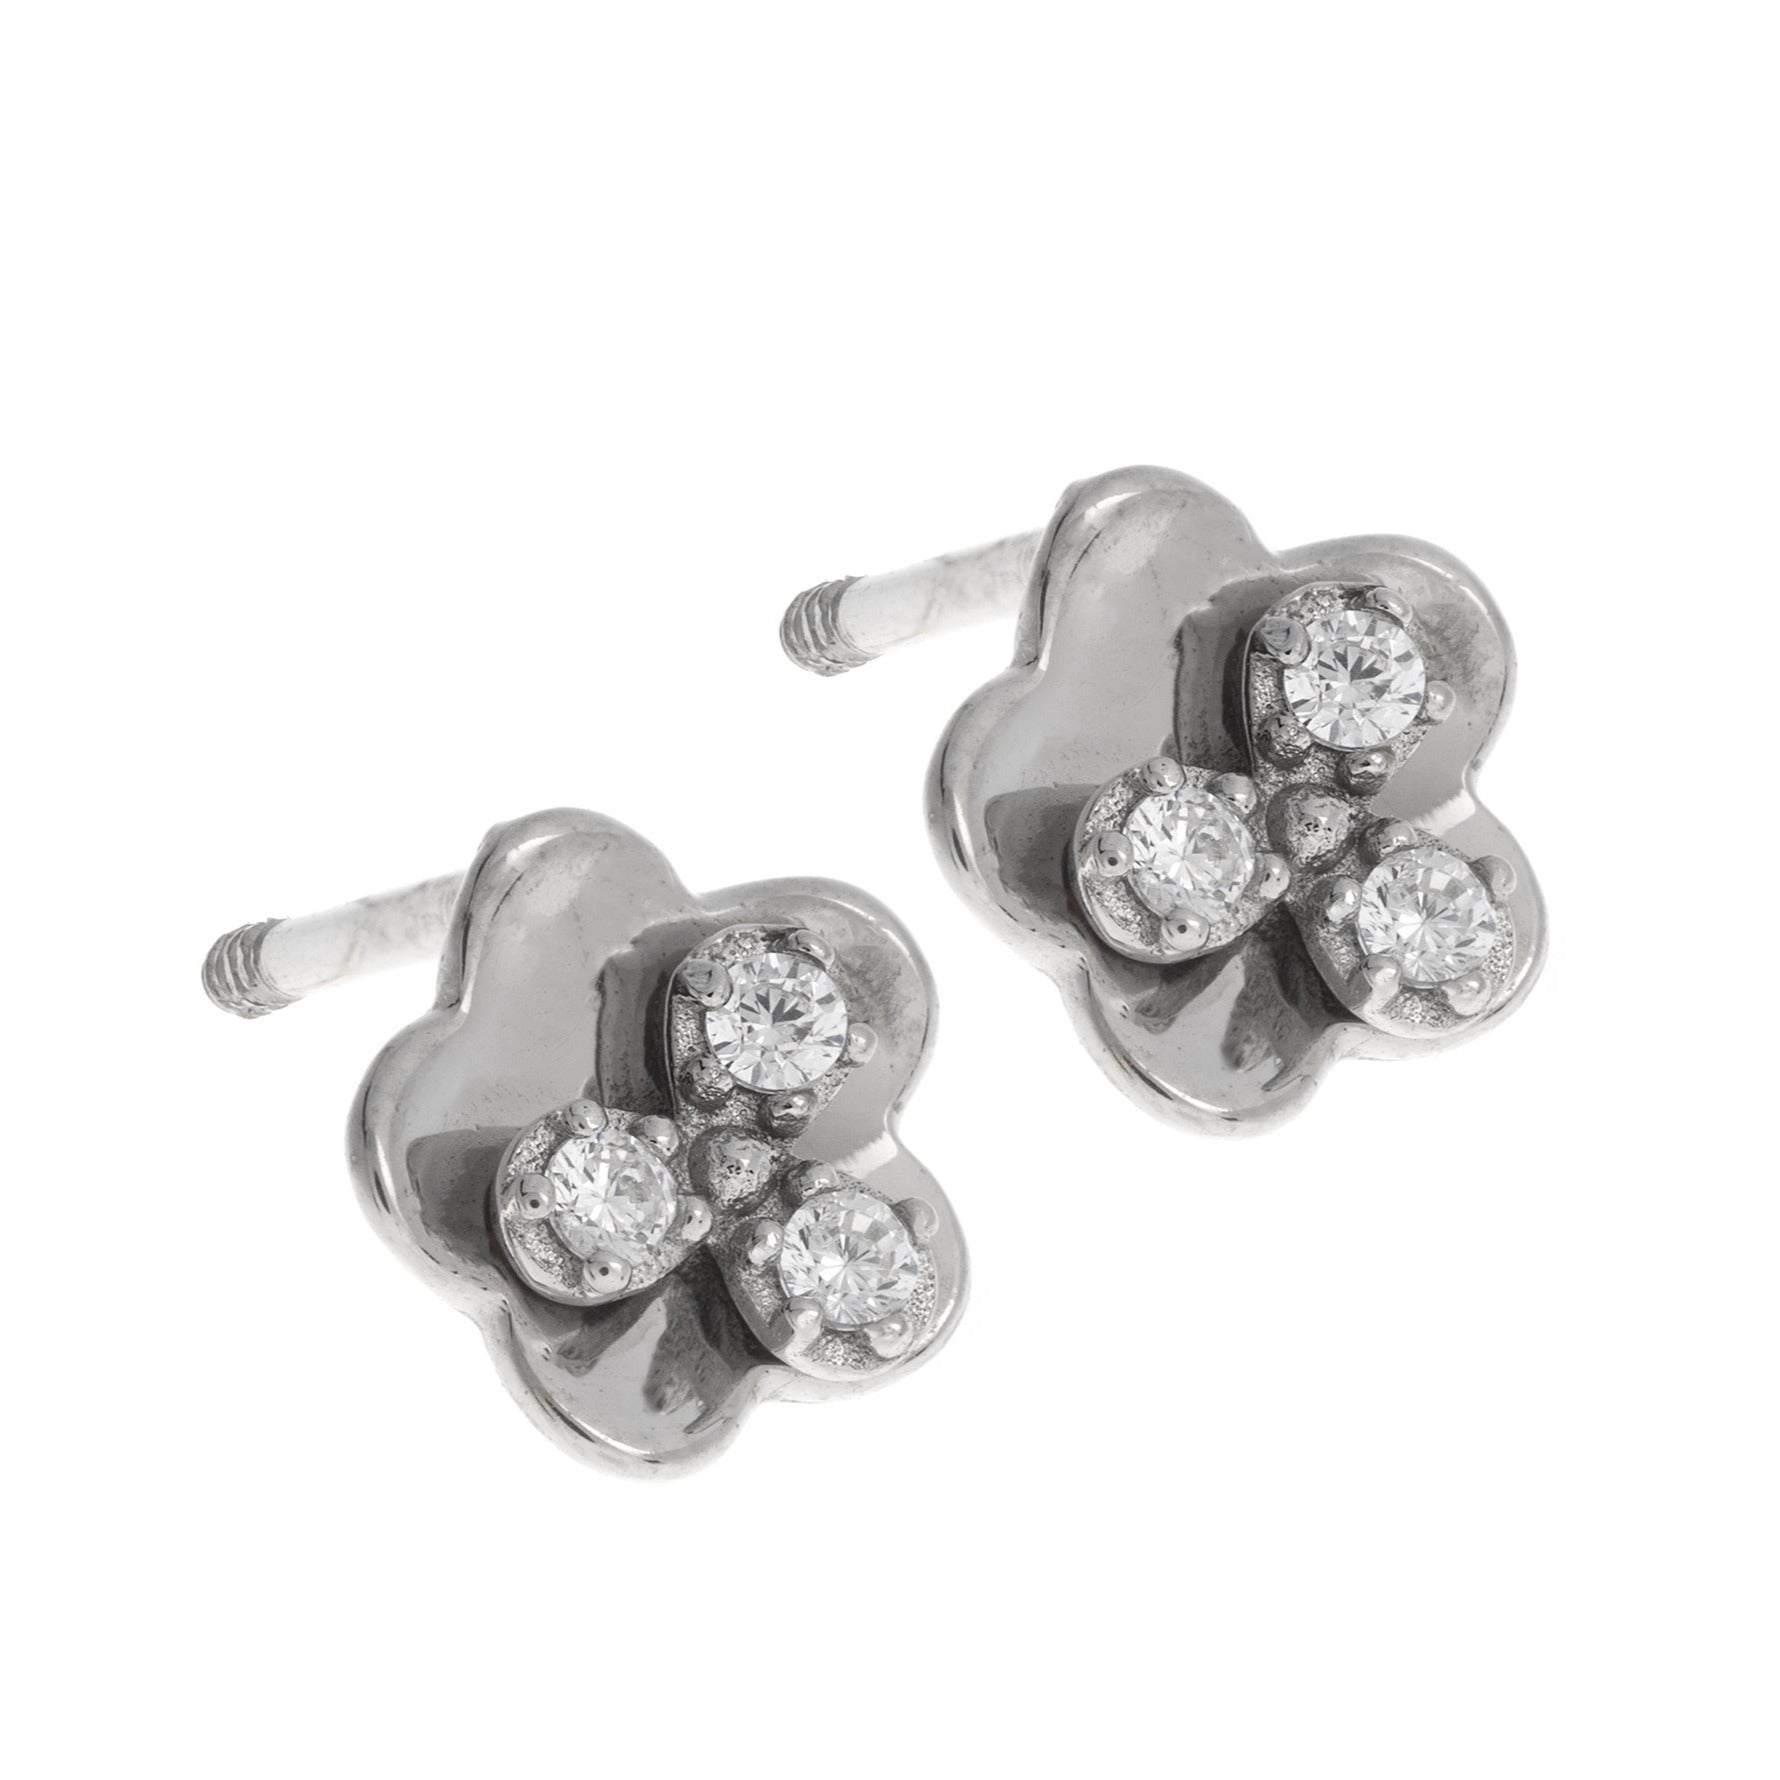 18ct White Gold Earrings set with Cubic Zirconia stones (0.8g) E-2964